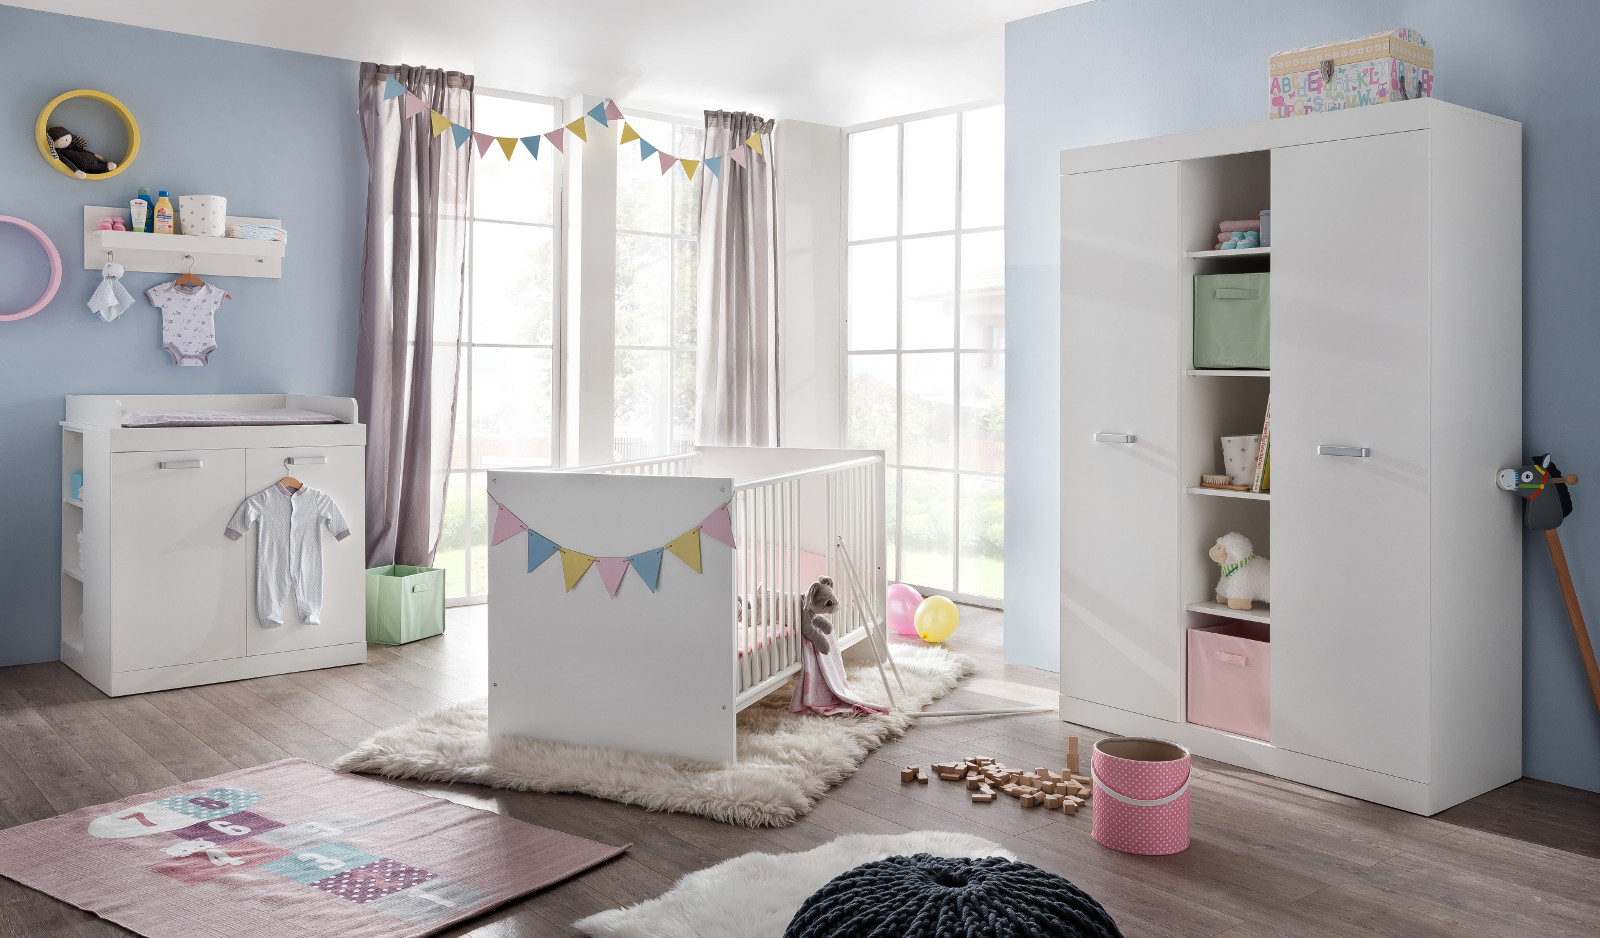 wandregal babyzimmer trendy wichtige mbelstcke die in jedes gehren with wandregal babyzimmer. Black Bedroom Furniture Sets. Home Design Ideas